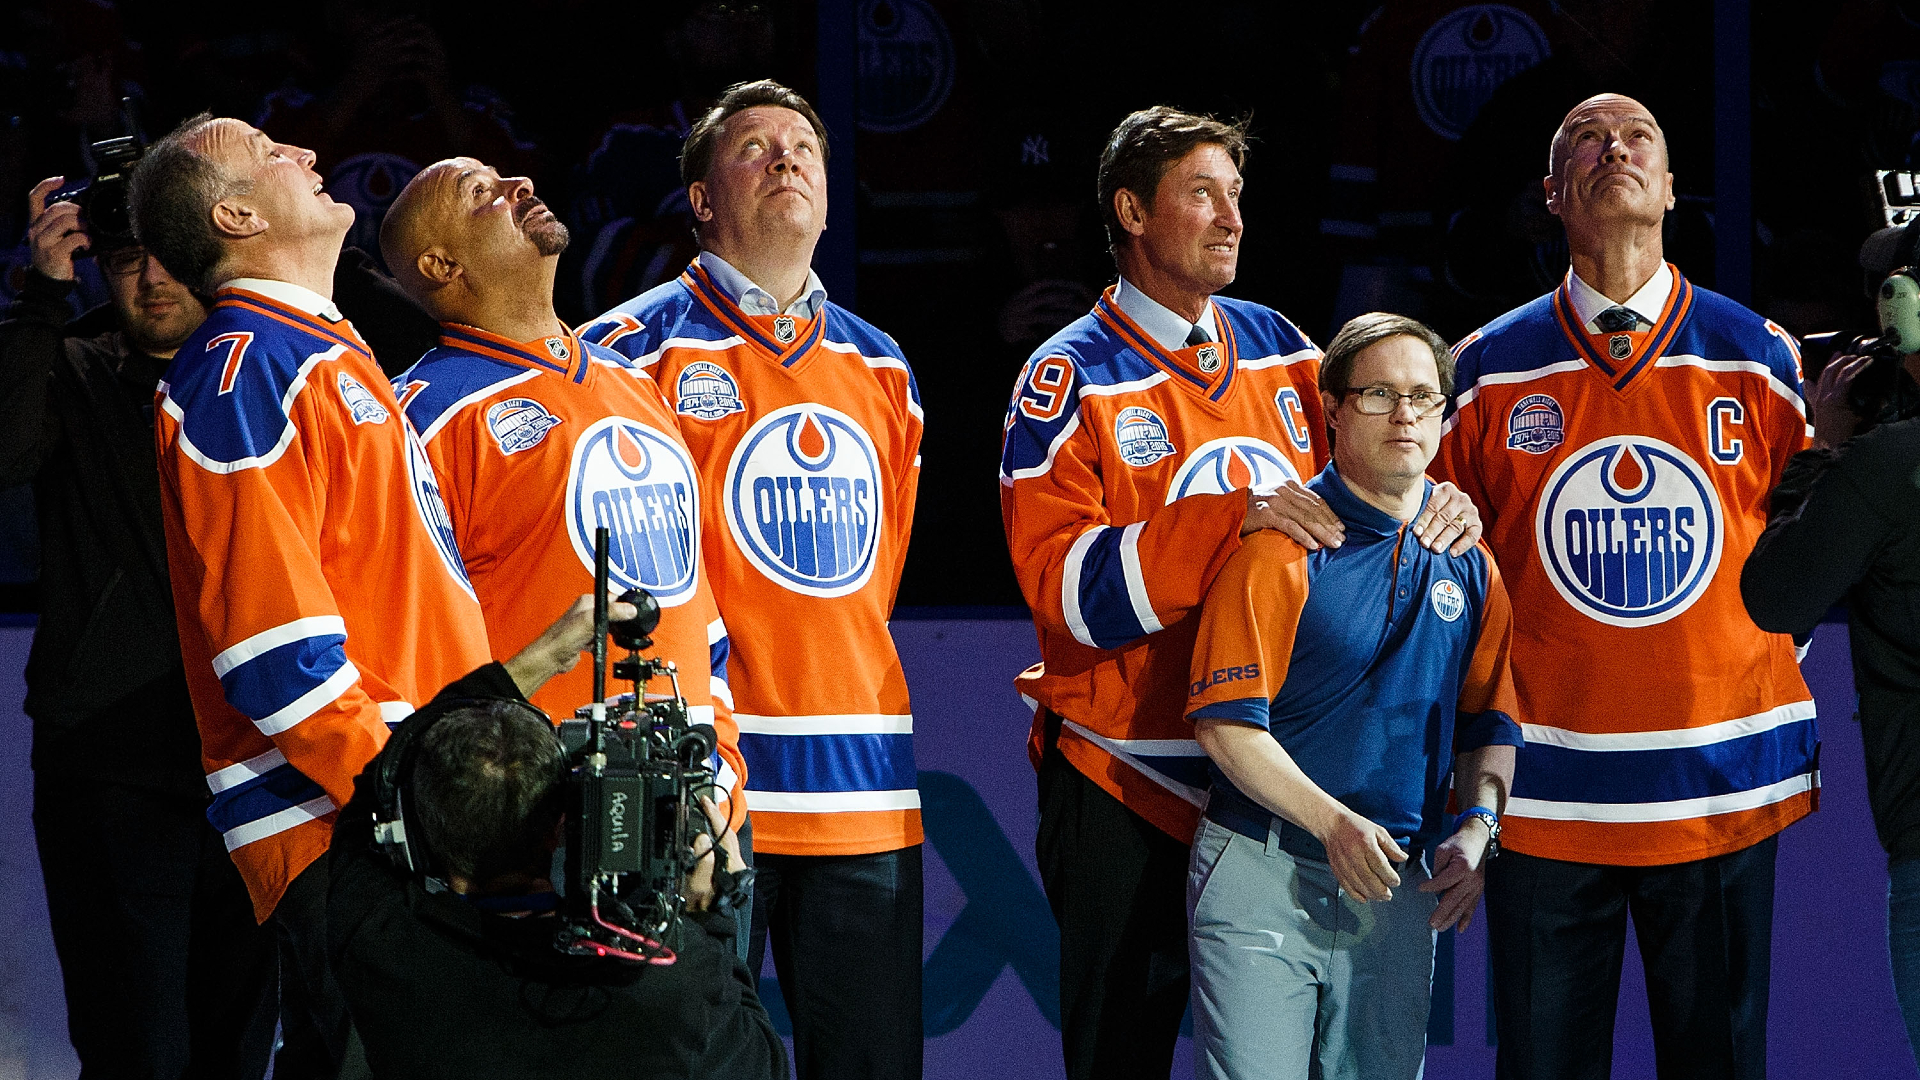 Joey Moss, beloved Edmonton sports figure, dies at 57: Wayne Gretzky, hockey world react